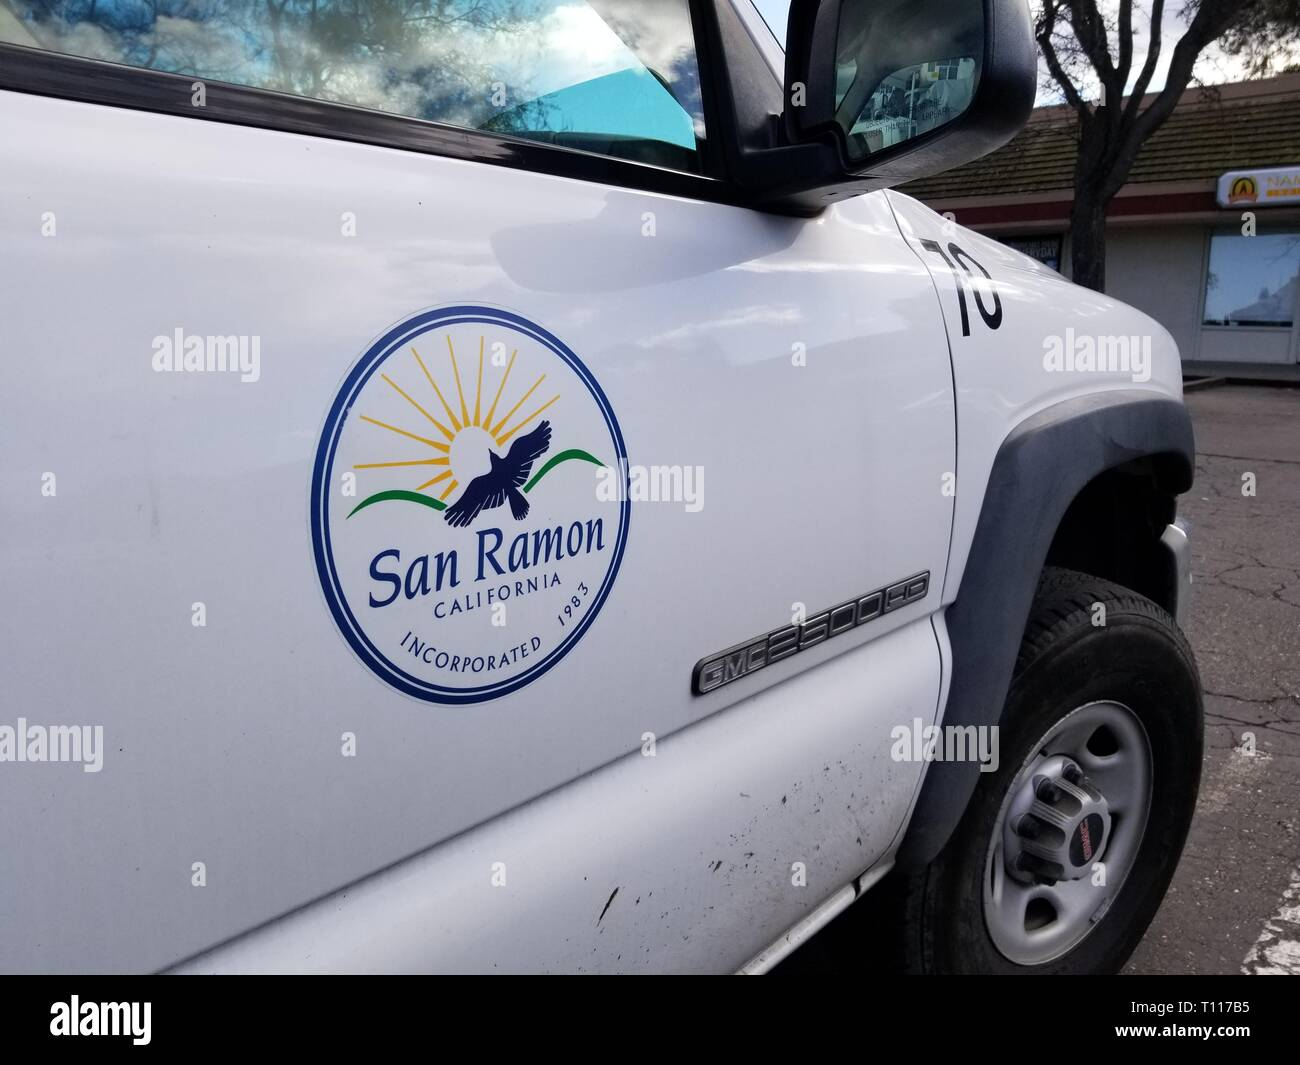 Close-up of logo for the city of San Ramon, California, on